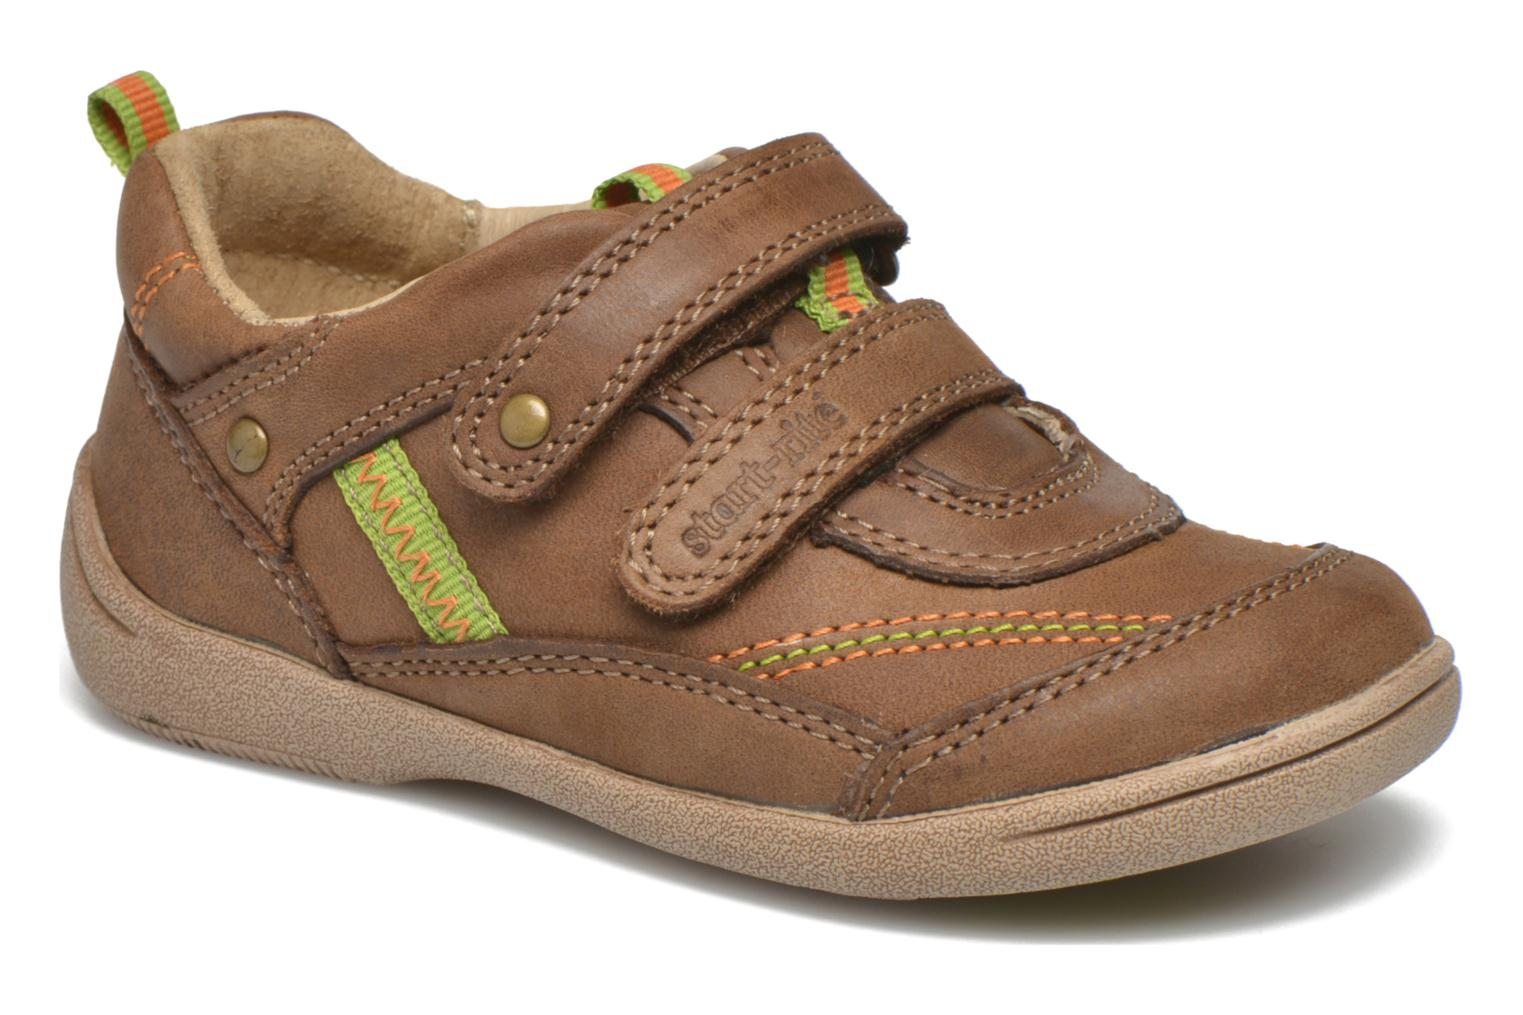 Leo Light brown leather